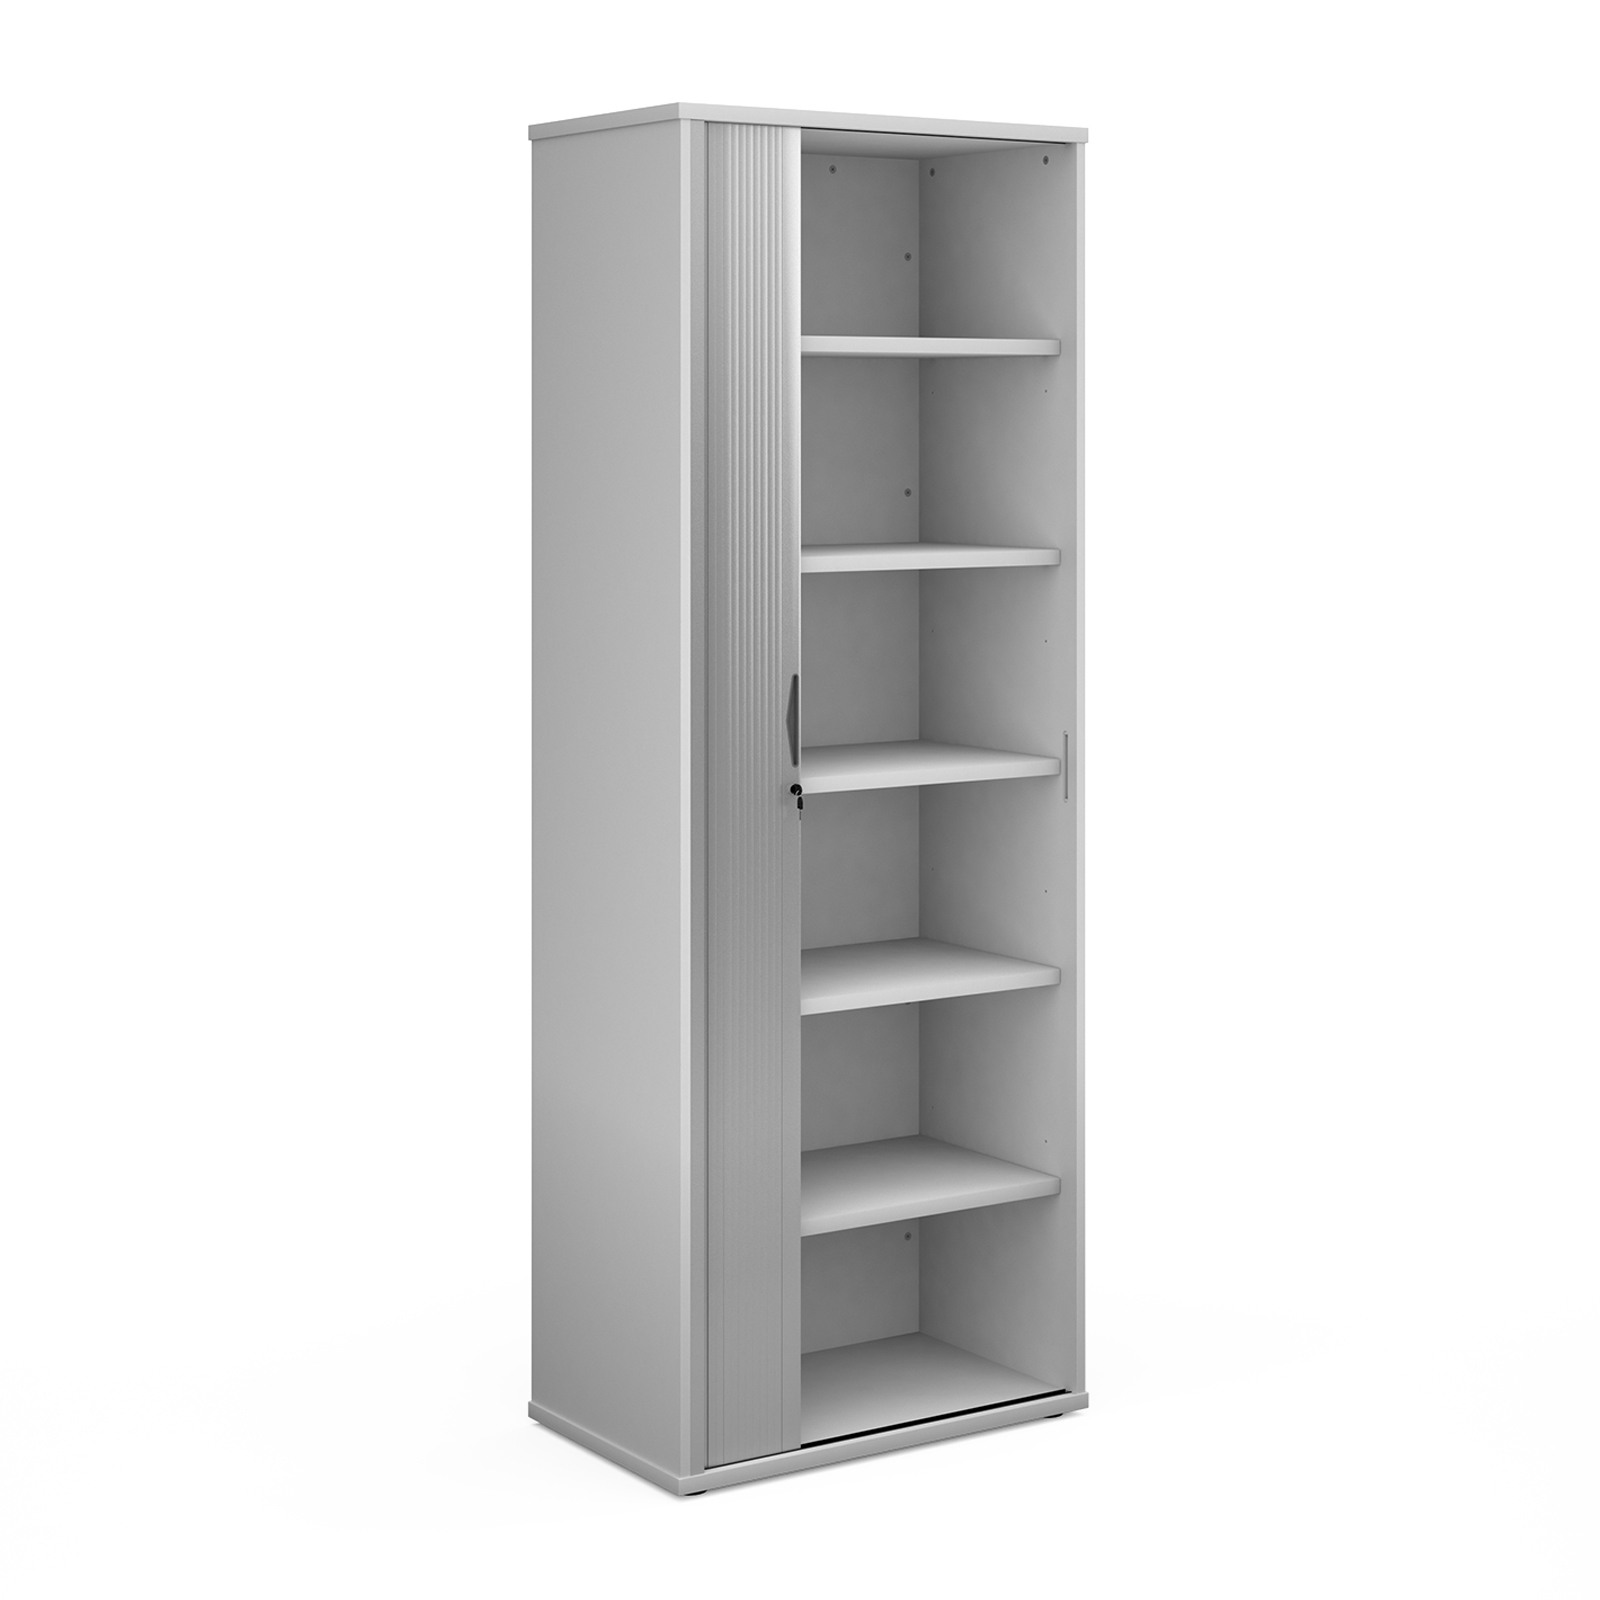 Over 1200mm High Universal single door tambour cupboard 2140mm high with 5 shelves - white with silver door